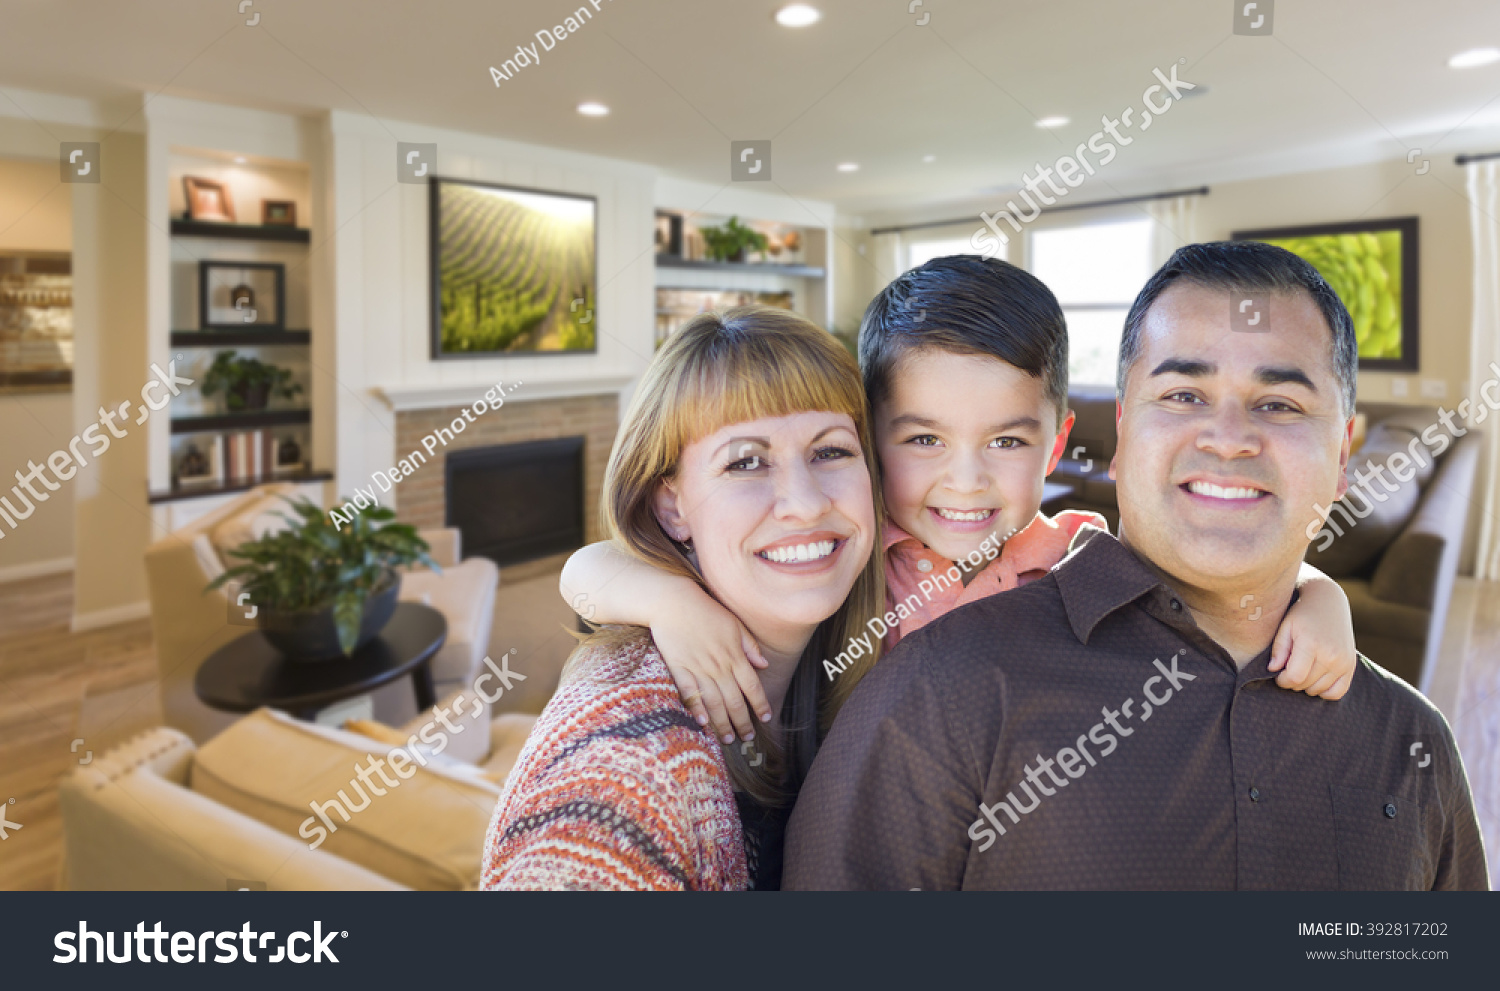 Happy Young Mixed Race Family Portrait In Living Room of Home